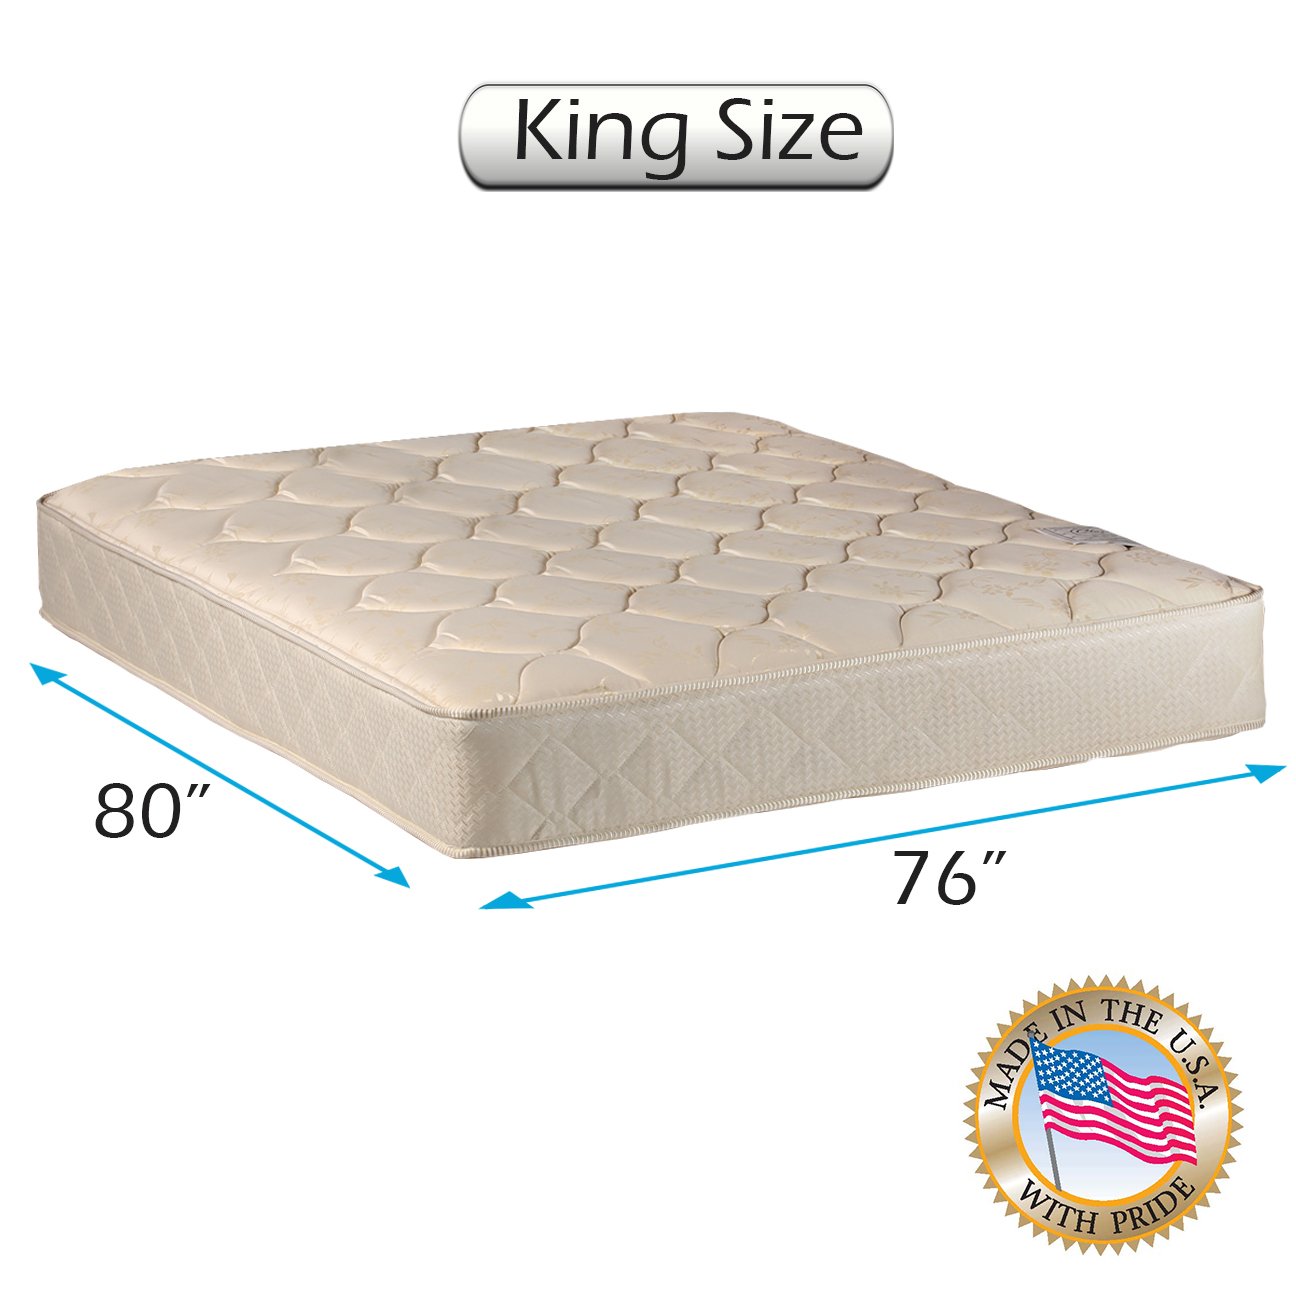 "Comfort Classic Gentle Firm (King - 76""x80""x9"") Mattress Only - Fully Assembled, Orthopedic, Good for your back, Superior Quality - Long Lasting and 1 Sided - By Dream Solutions USA"